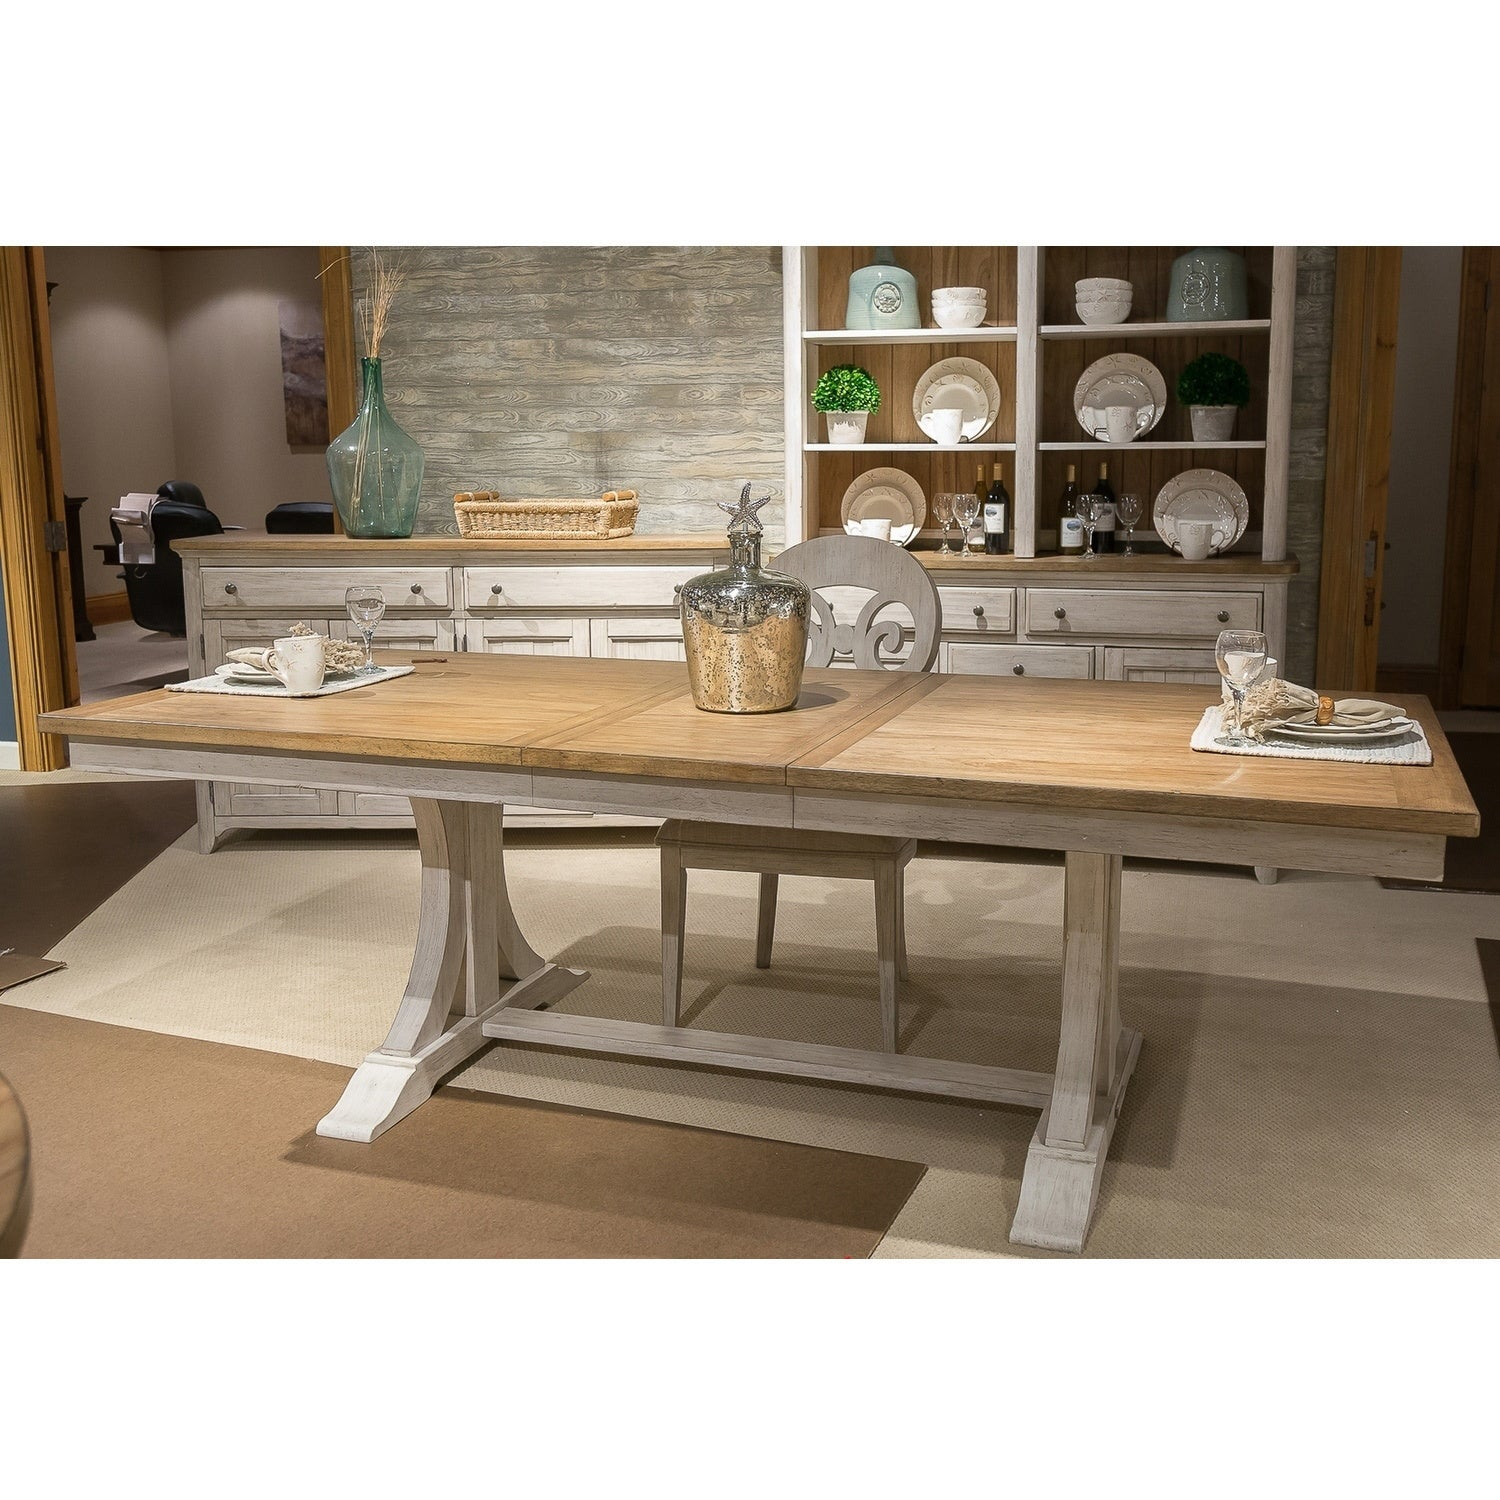 Attrayant Farmhouse Reimagined Antique White And Chestnut Trestle Dining Table    Antique White